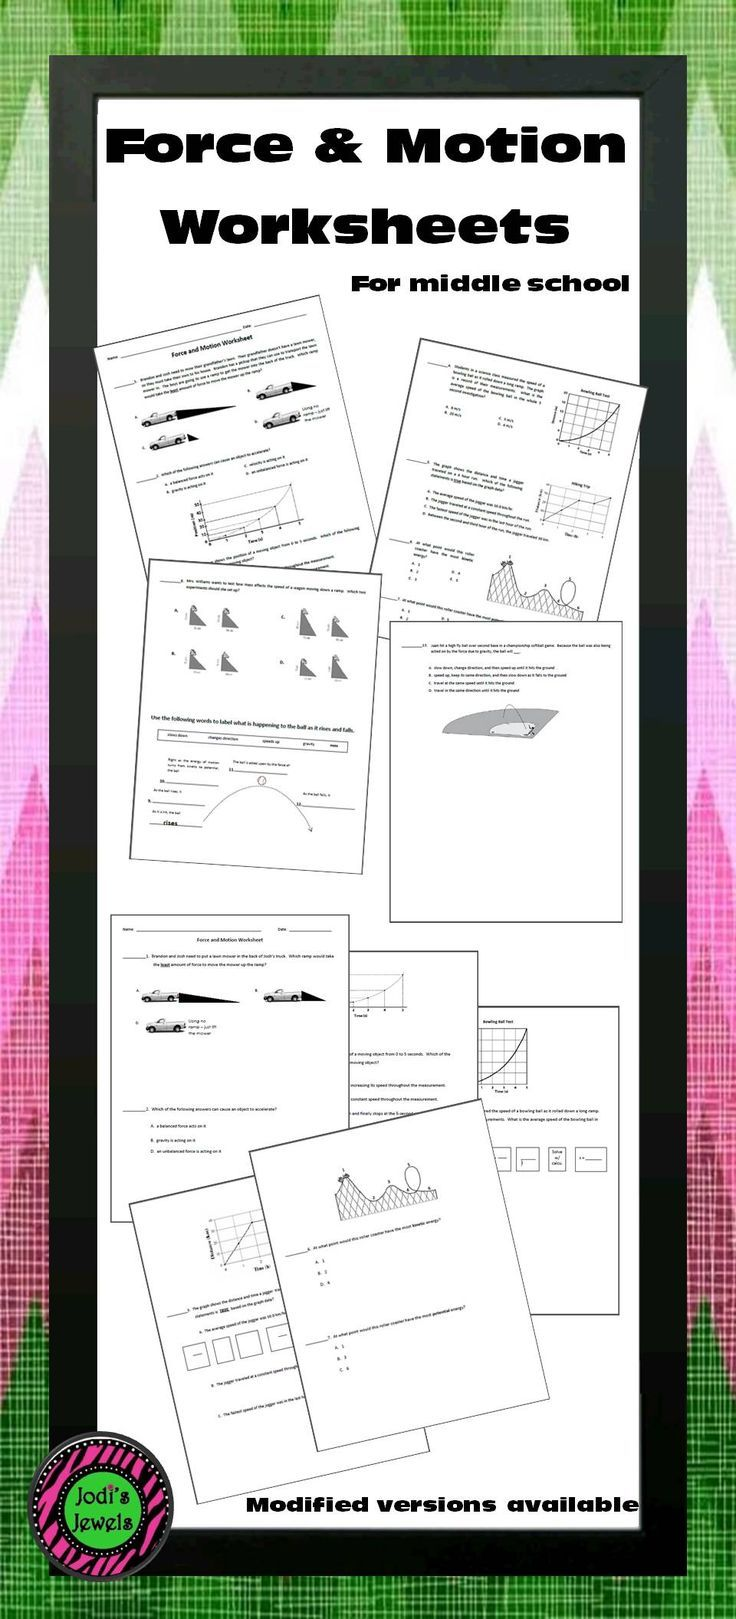 Worksheets Interpreting Motion Graphs Worksheet force and motion worksheet holiday crafts for kids pinterest worksheets middle school students include interpreting data calculating speed average analyzing